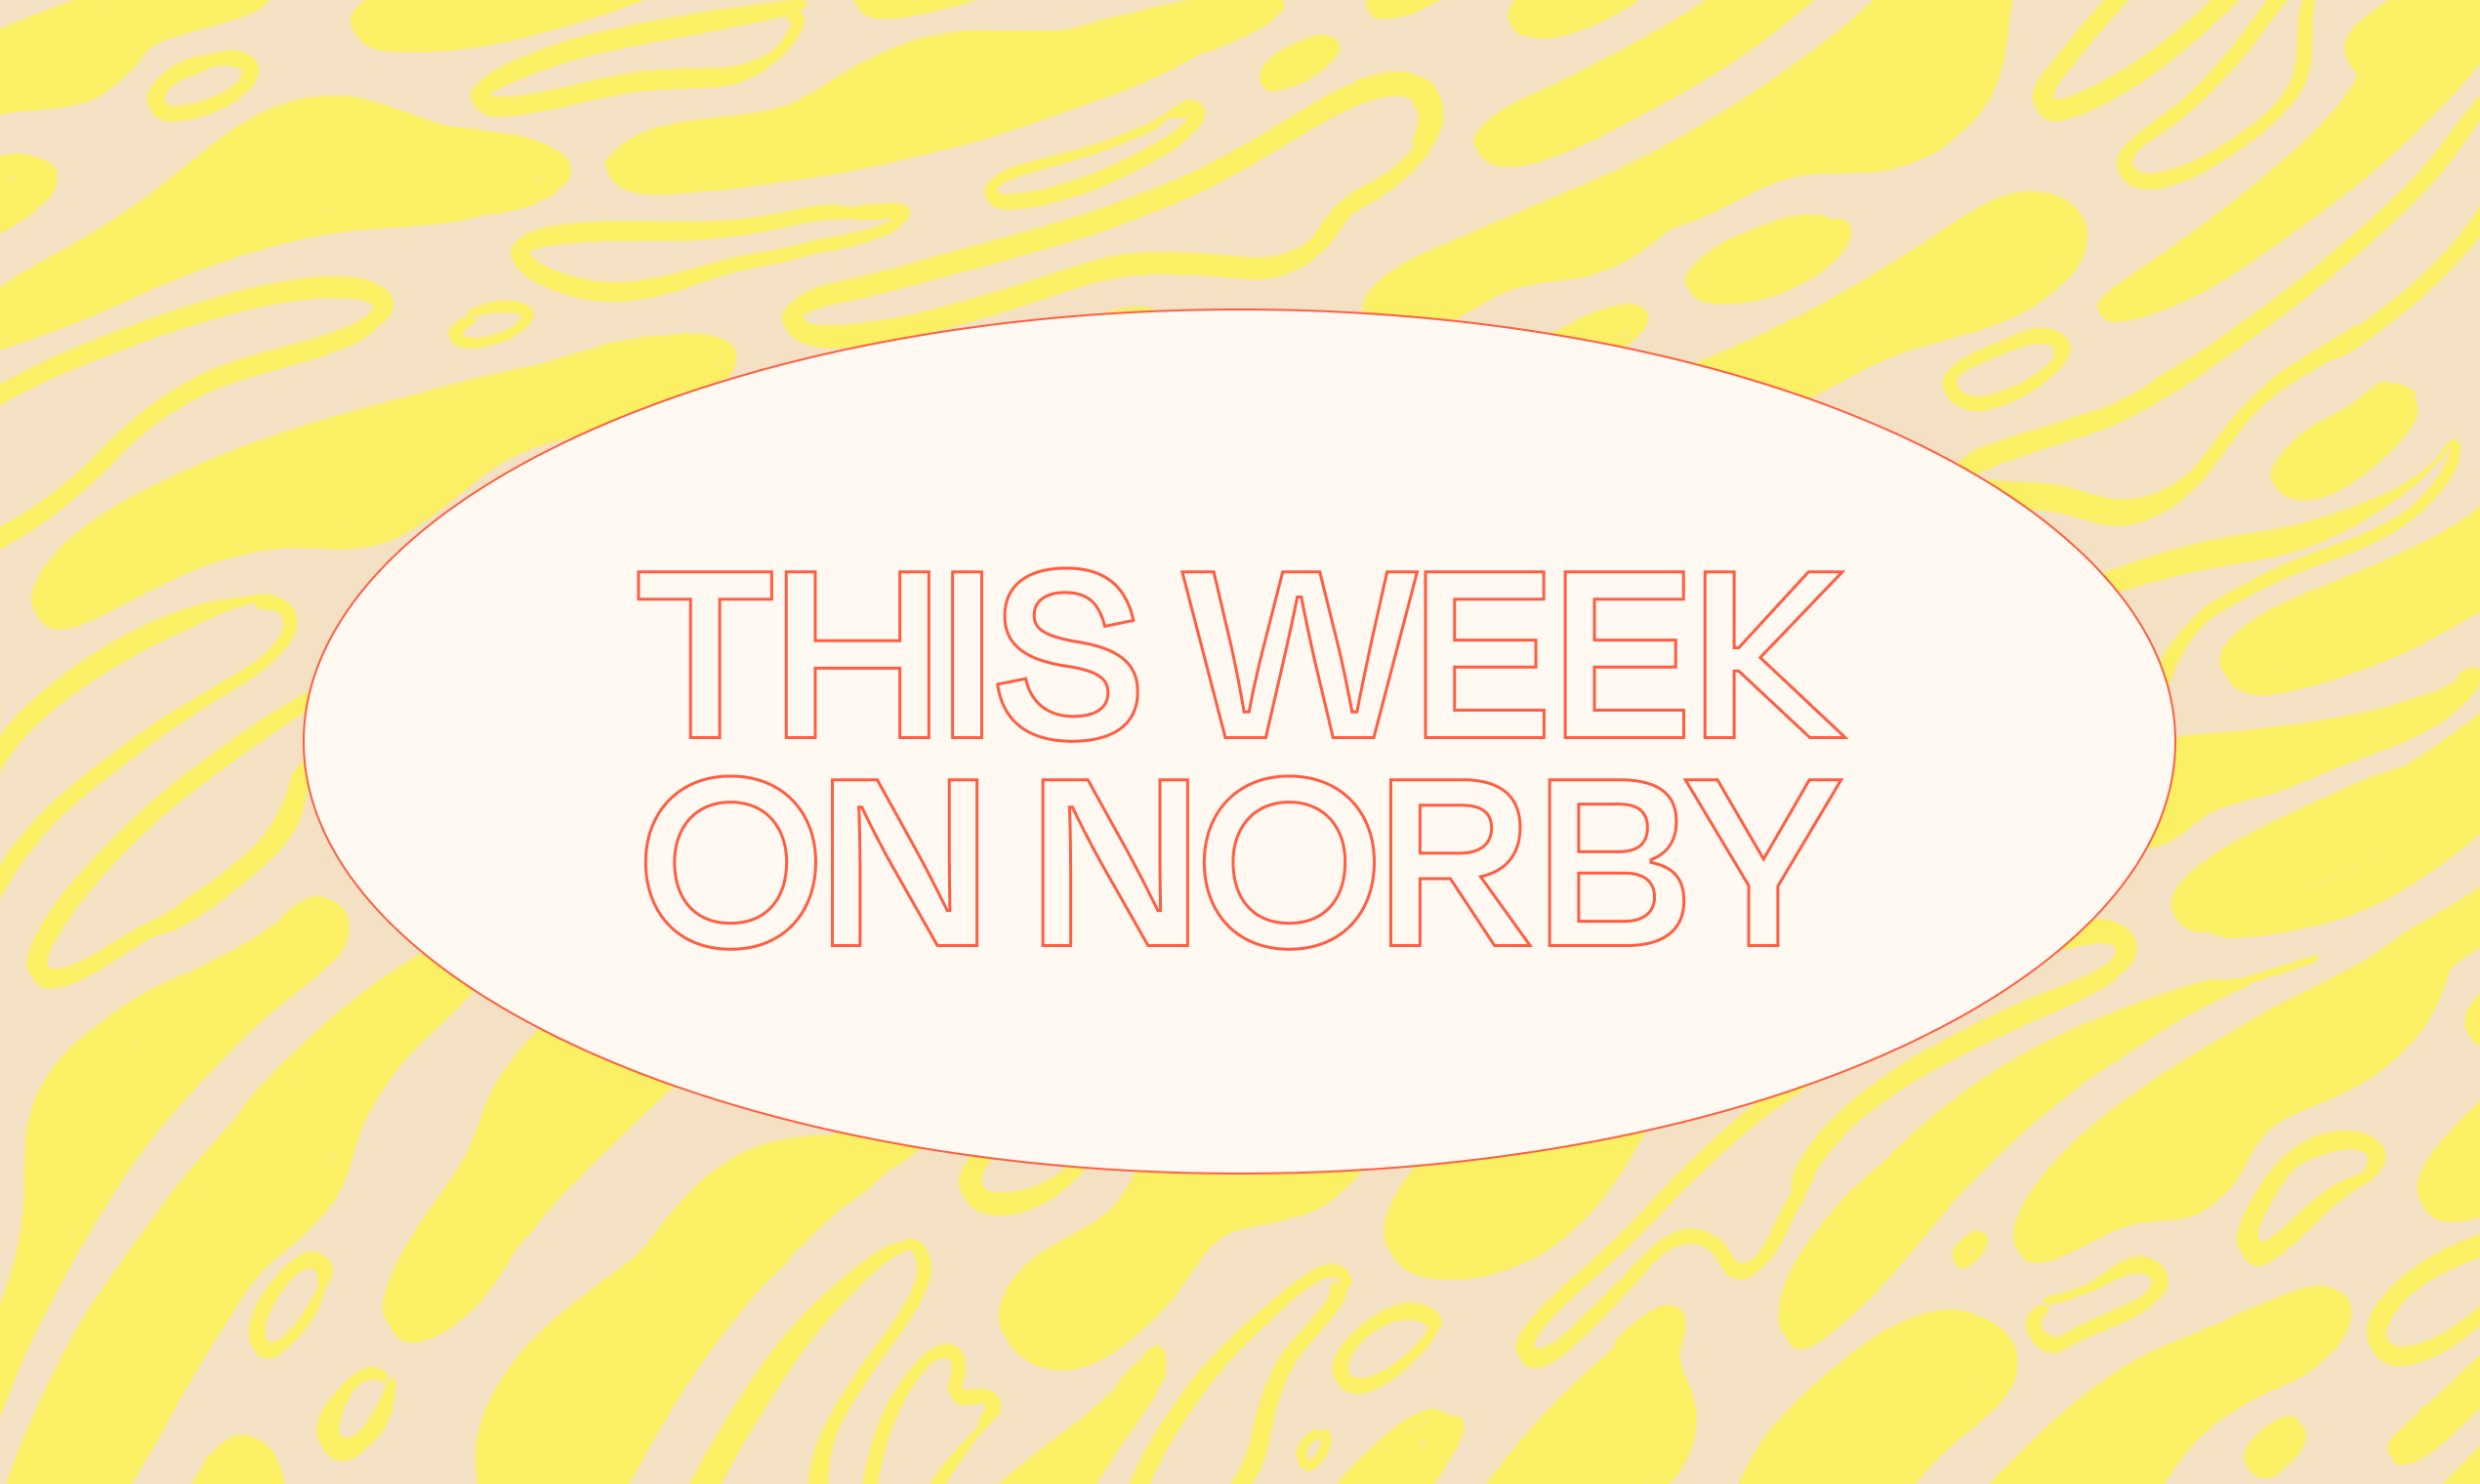 This Week on Norby: July 12, 2021